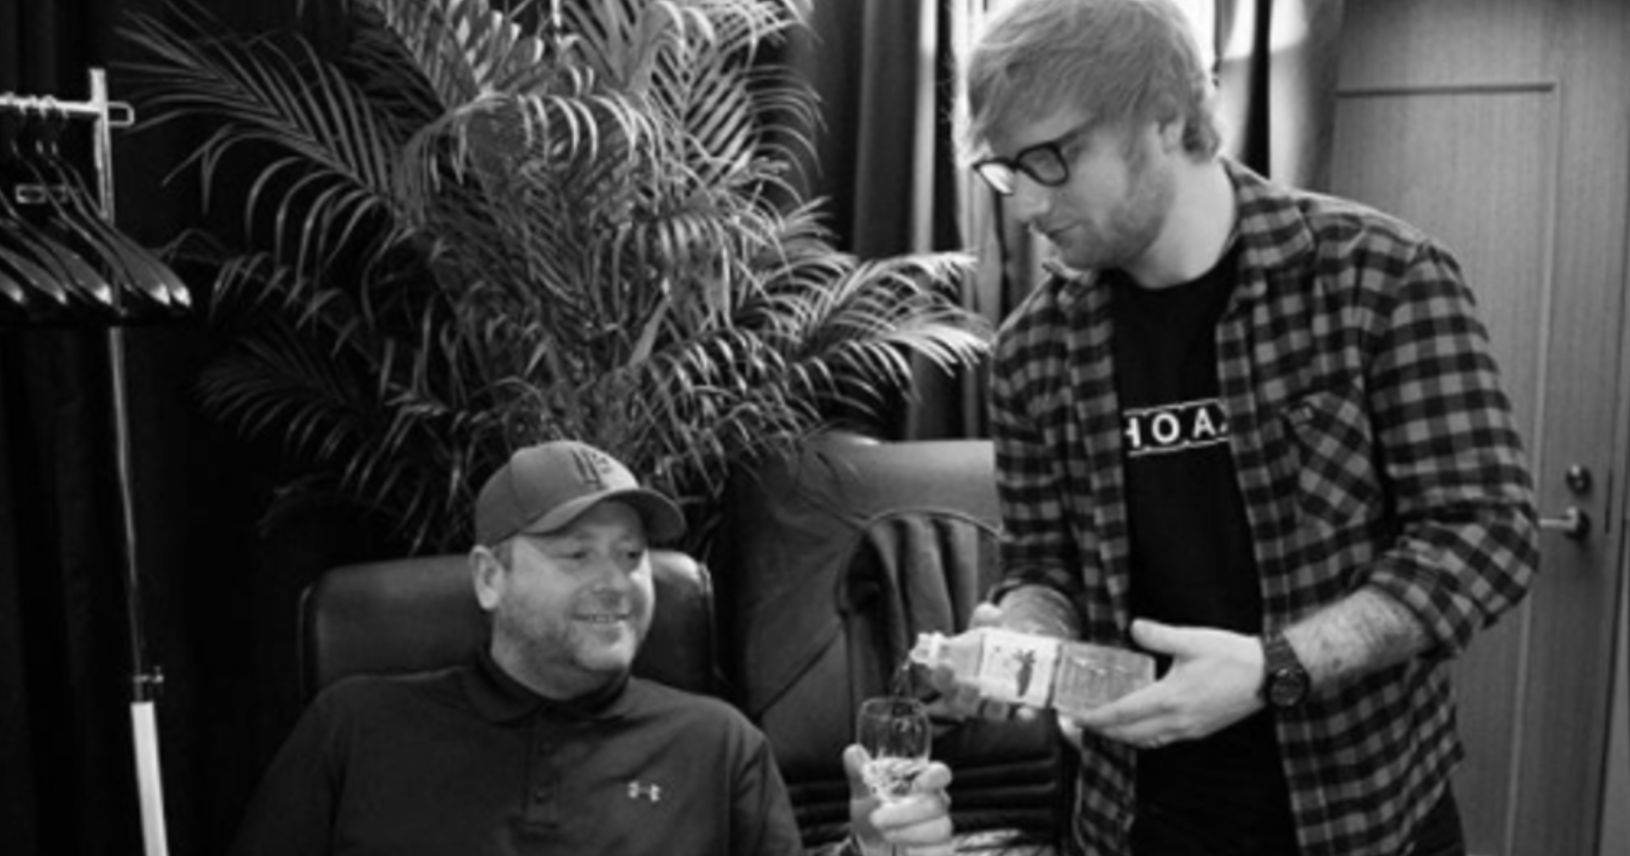 Ed Sheeran's Bodyguard Hilariously Instagrams His Life With The